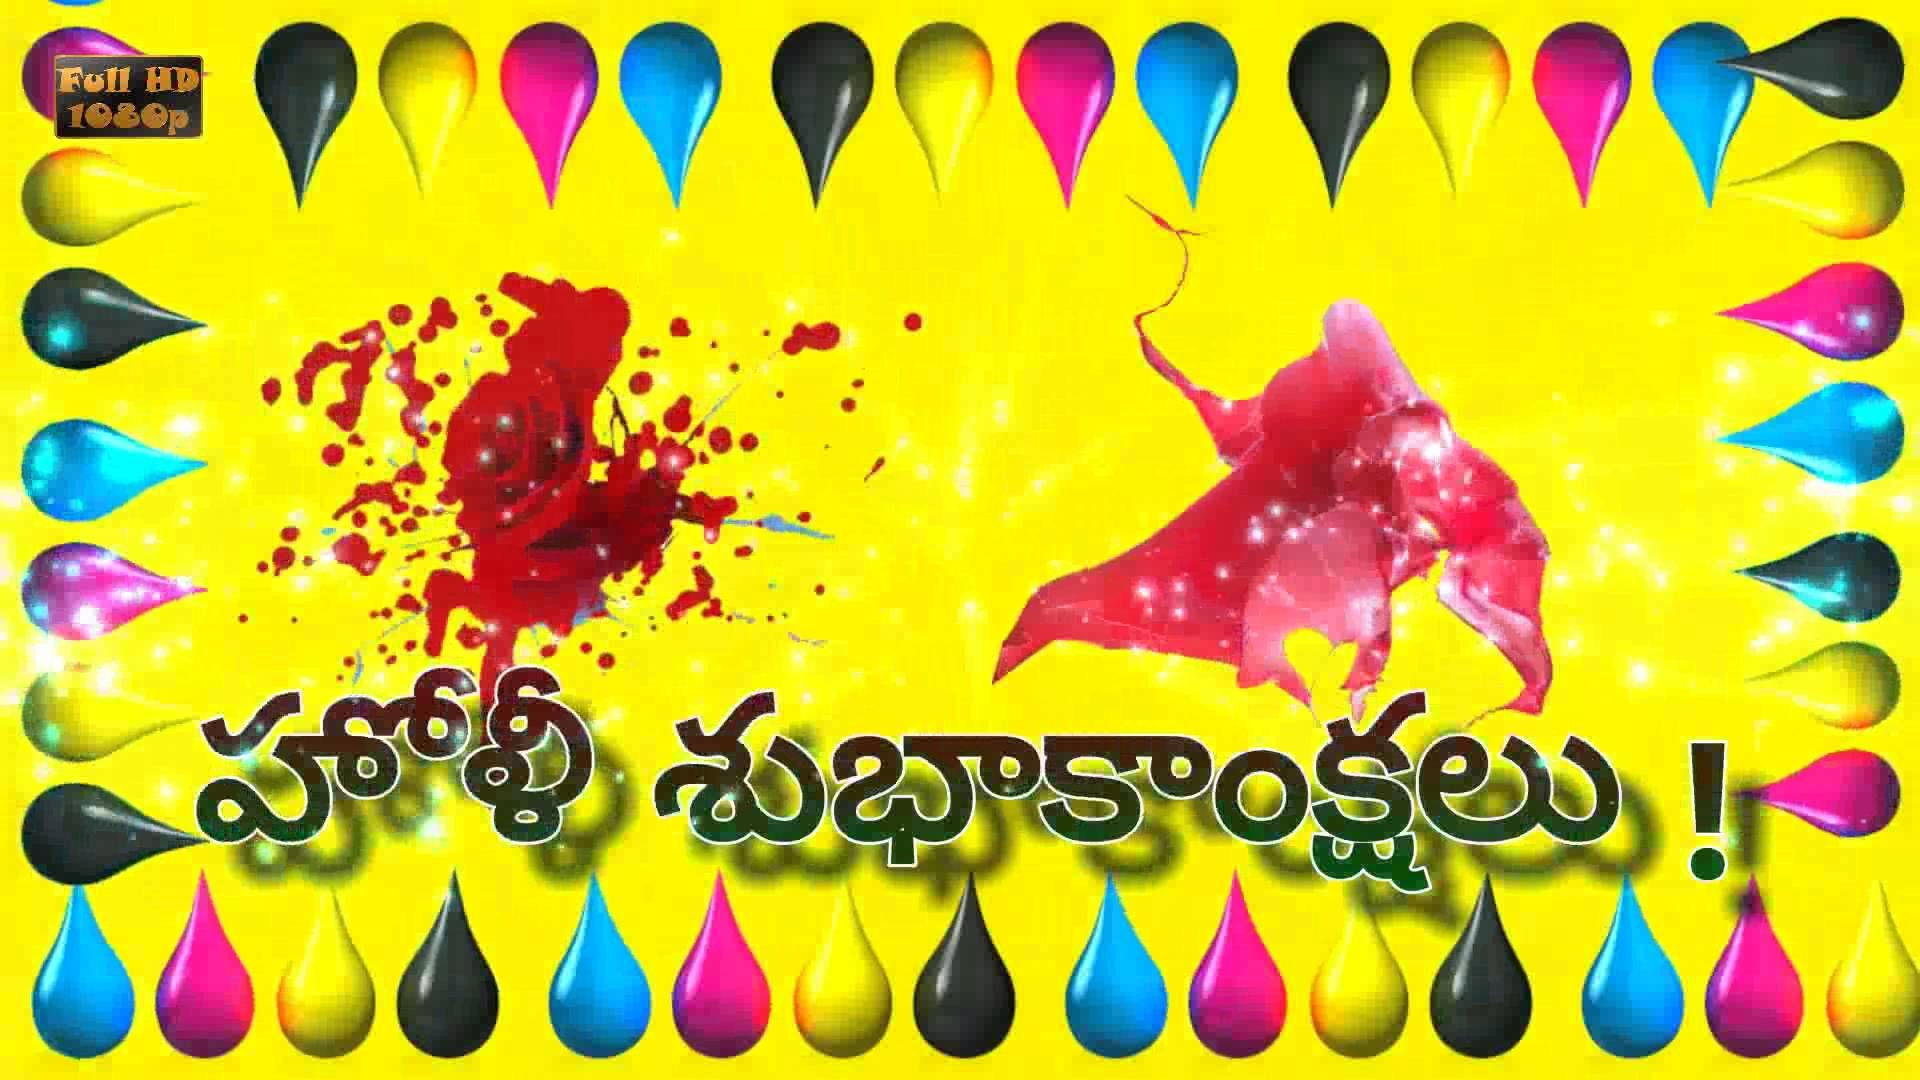 Holi Wishes In Telugu Happy Holi Greetings In Telugu Holi Whatsapp